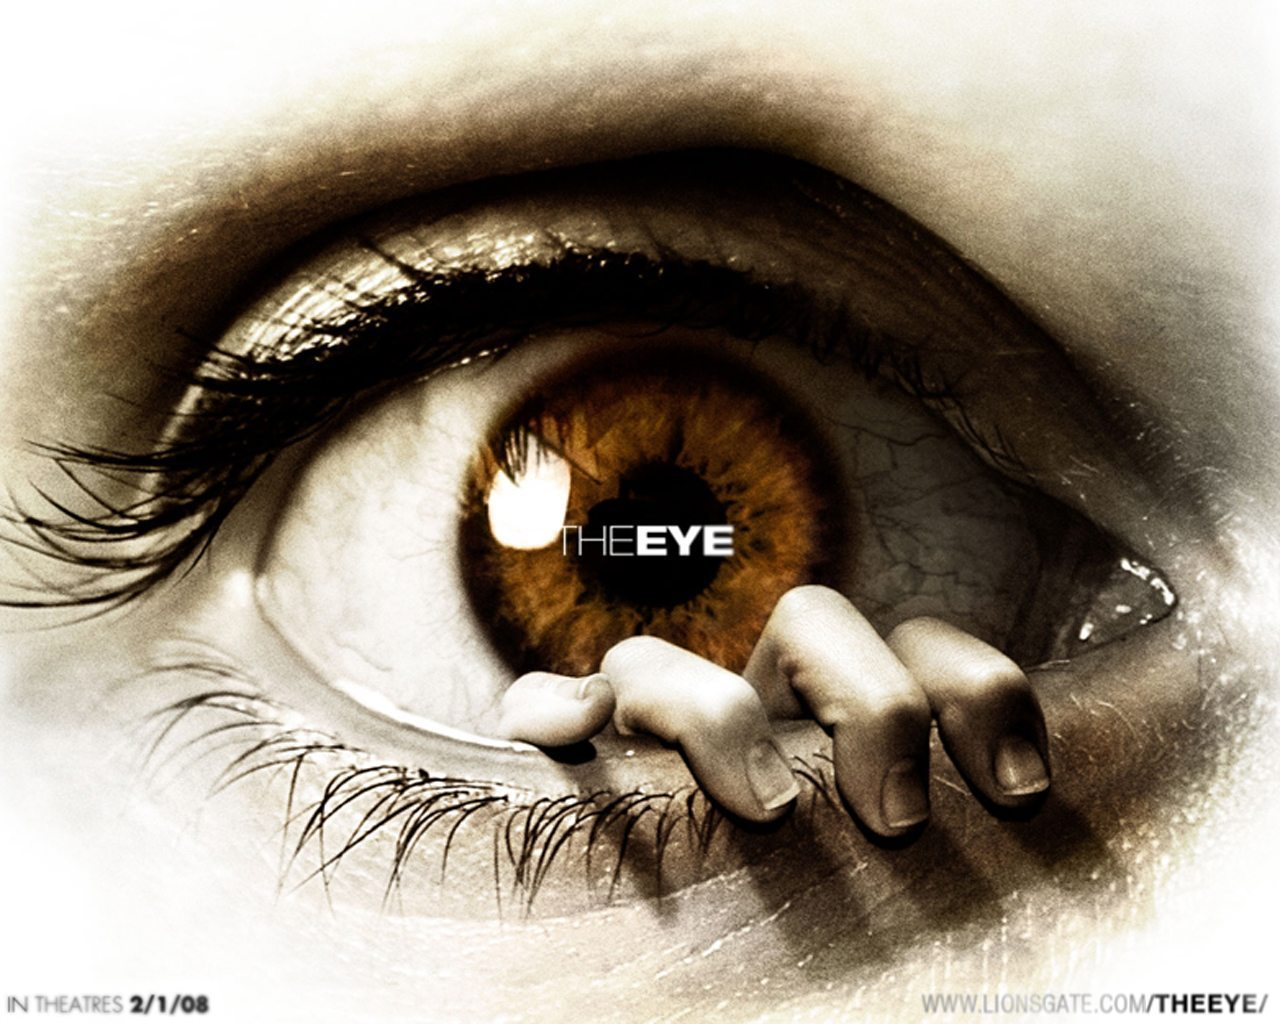 The Eye wallpapers   Horror Movies Wallpaper 6396111 1280x1024